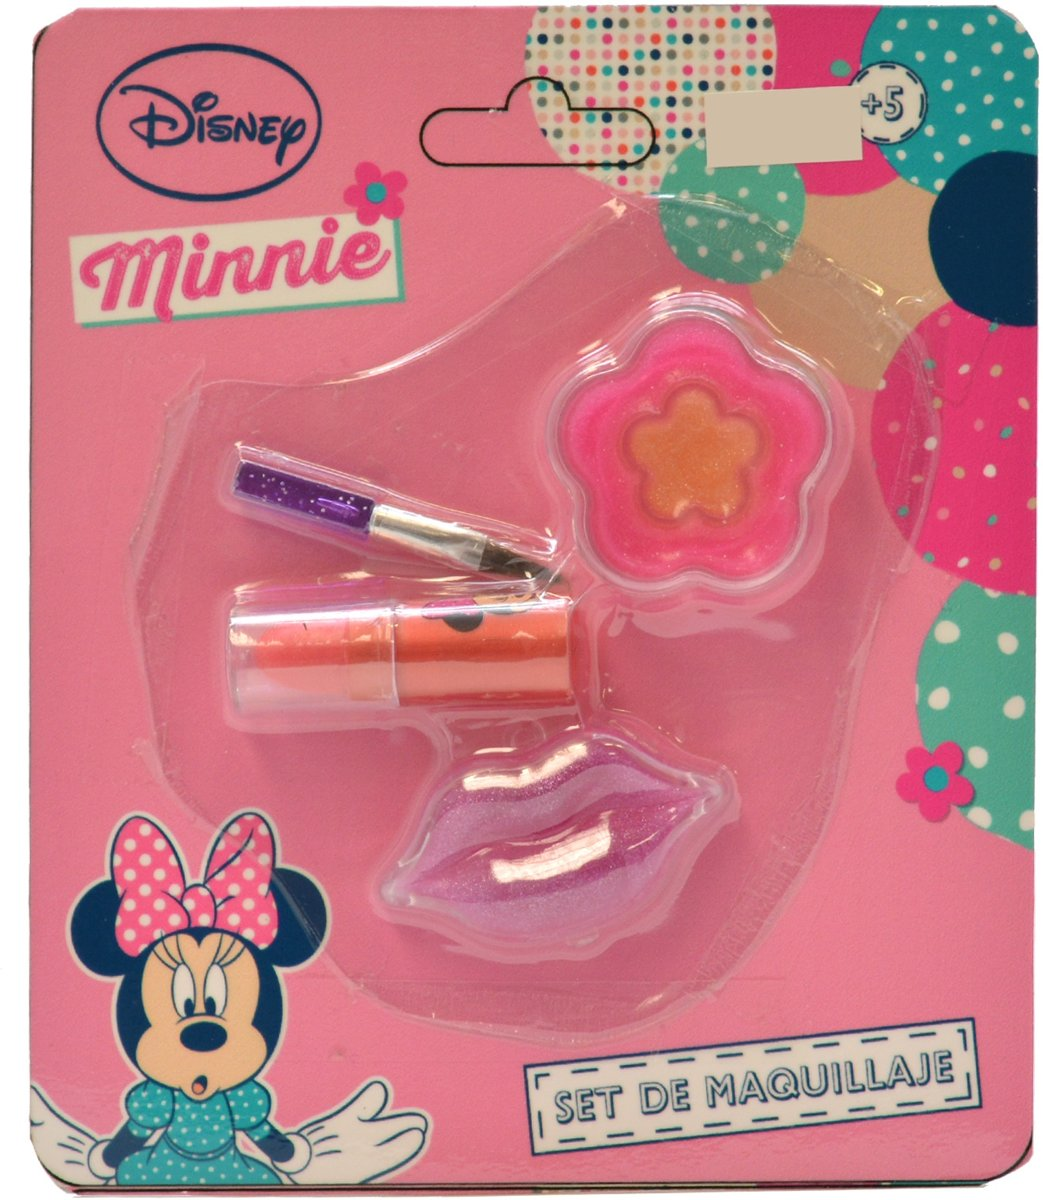 Lippenstiftset Minnie Mouse 4-delig